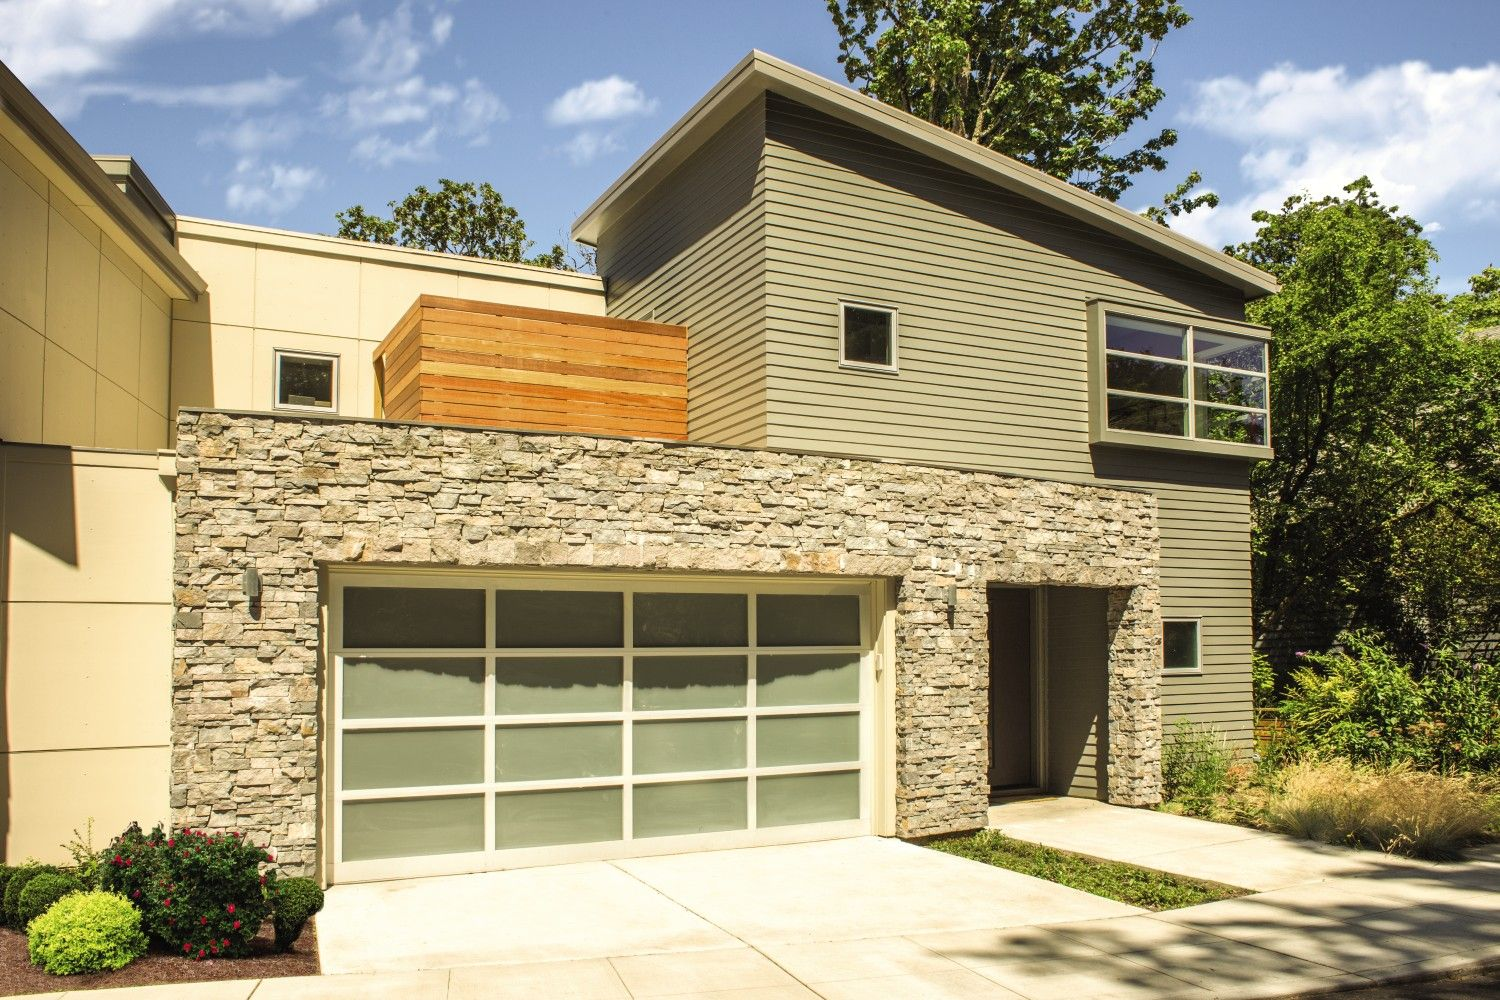 Contemporary home with a modern garage door including beautiful